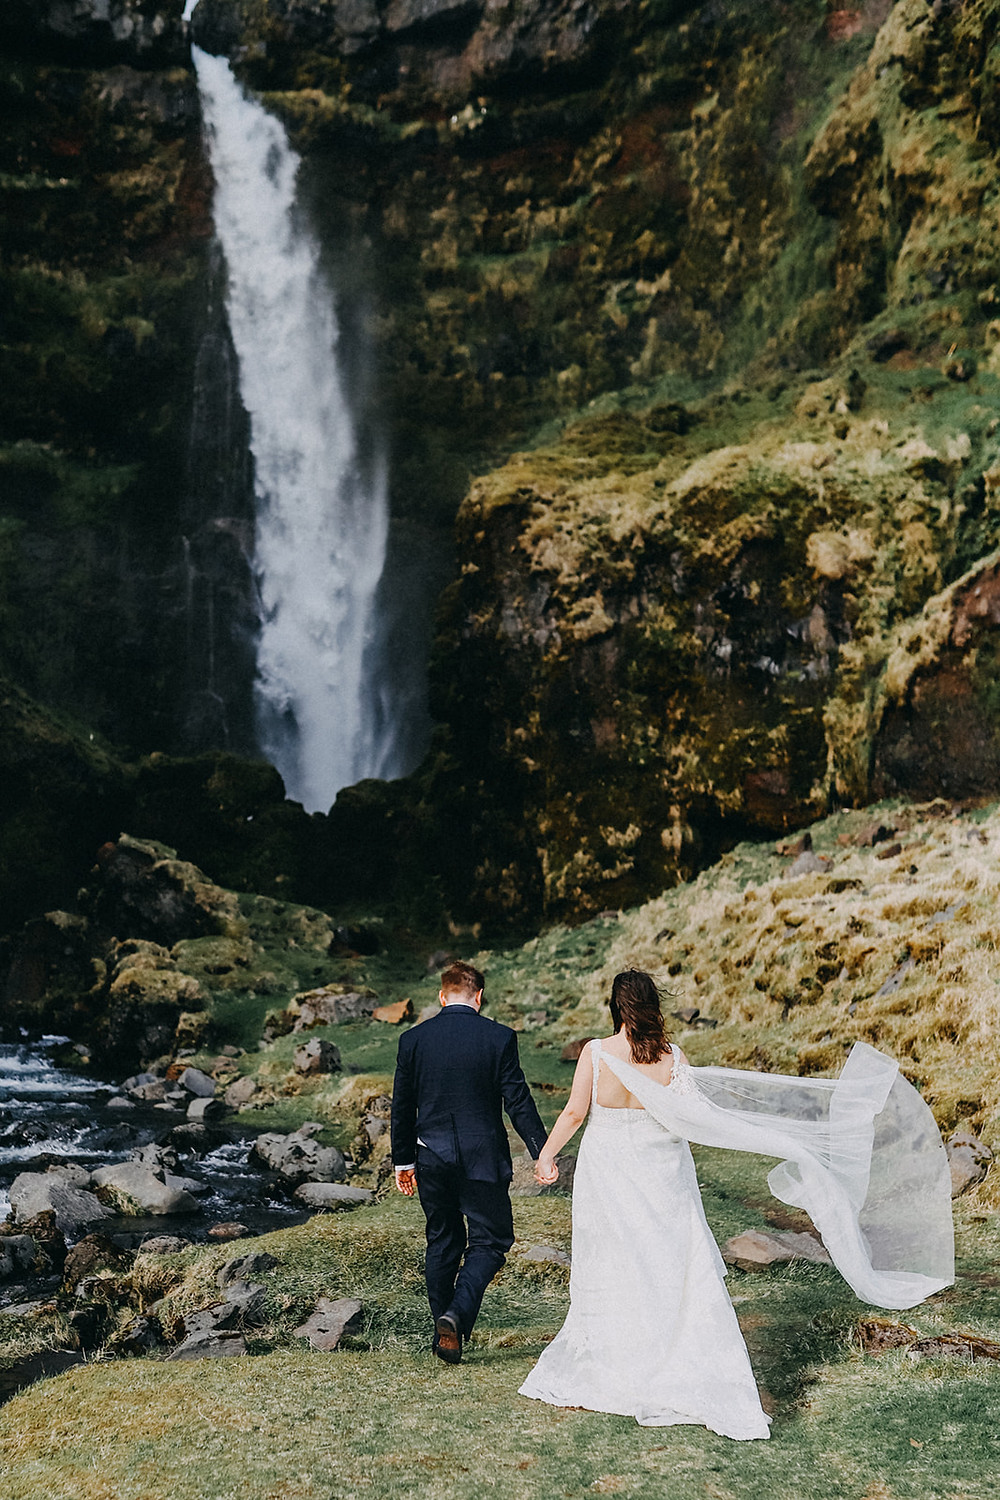 Iceland waterfall wedding photo by Kristin Maria wedding photographer